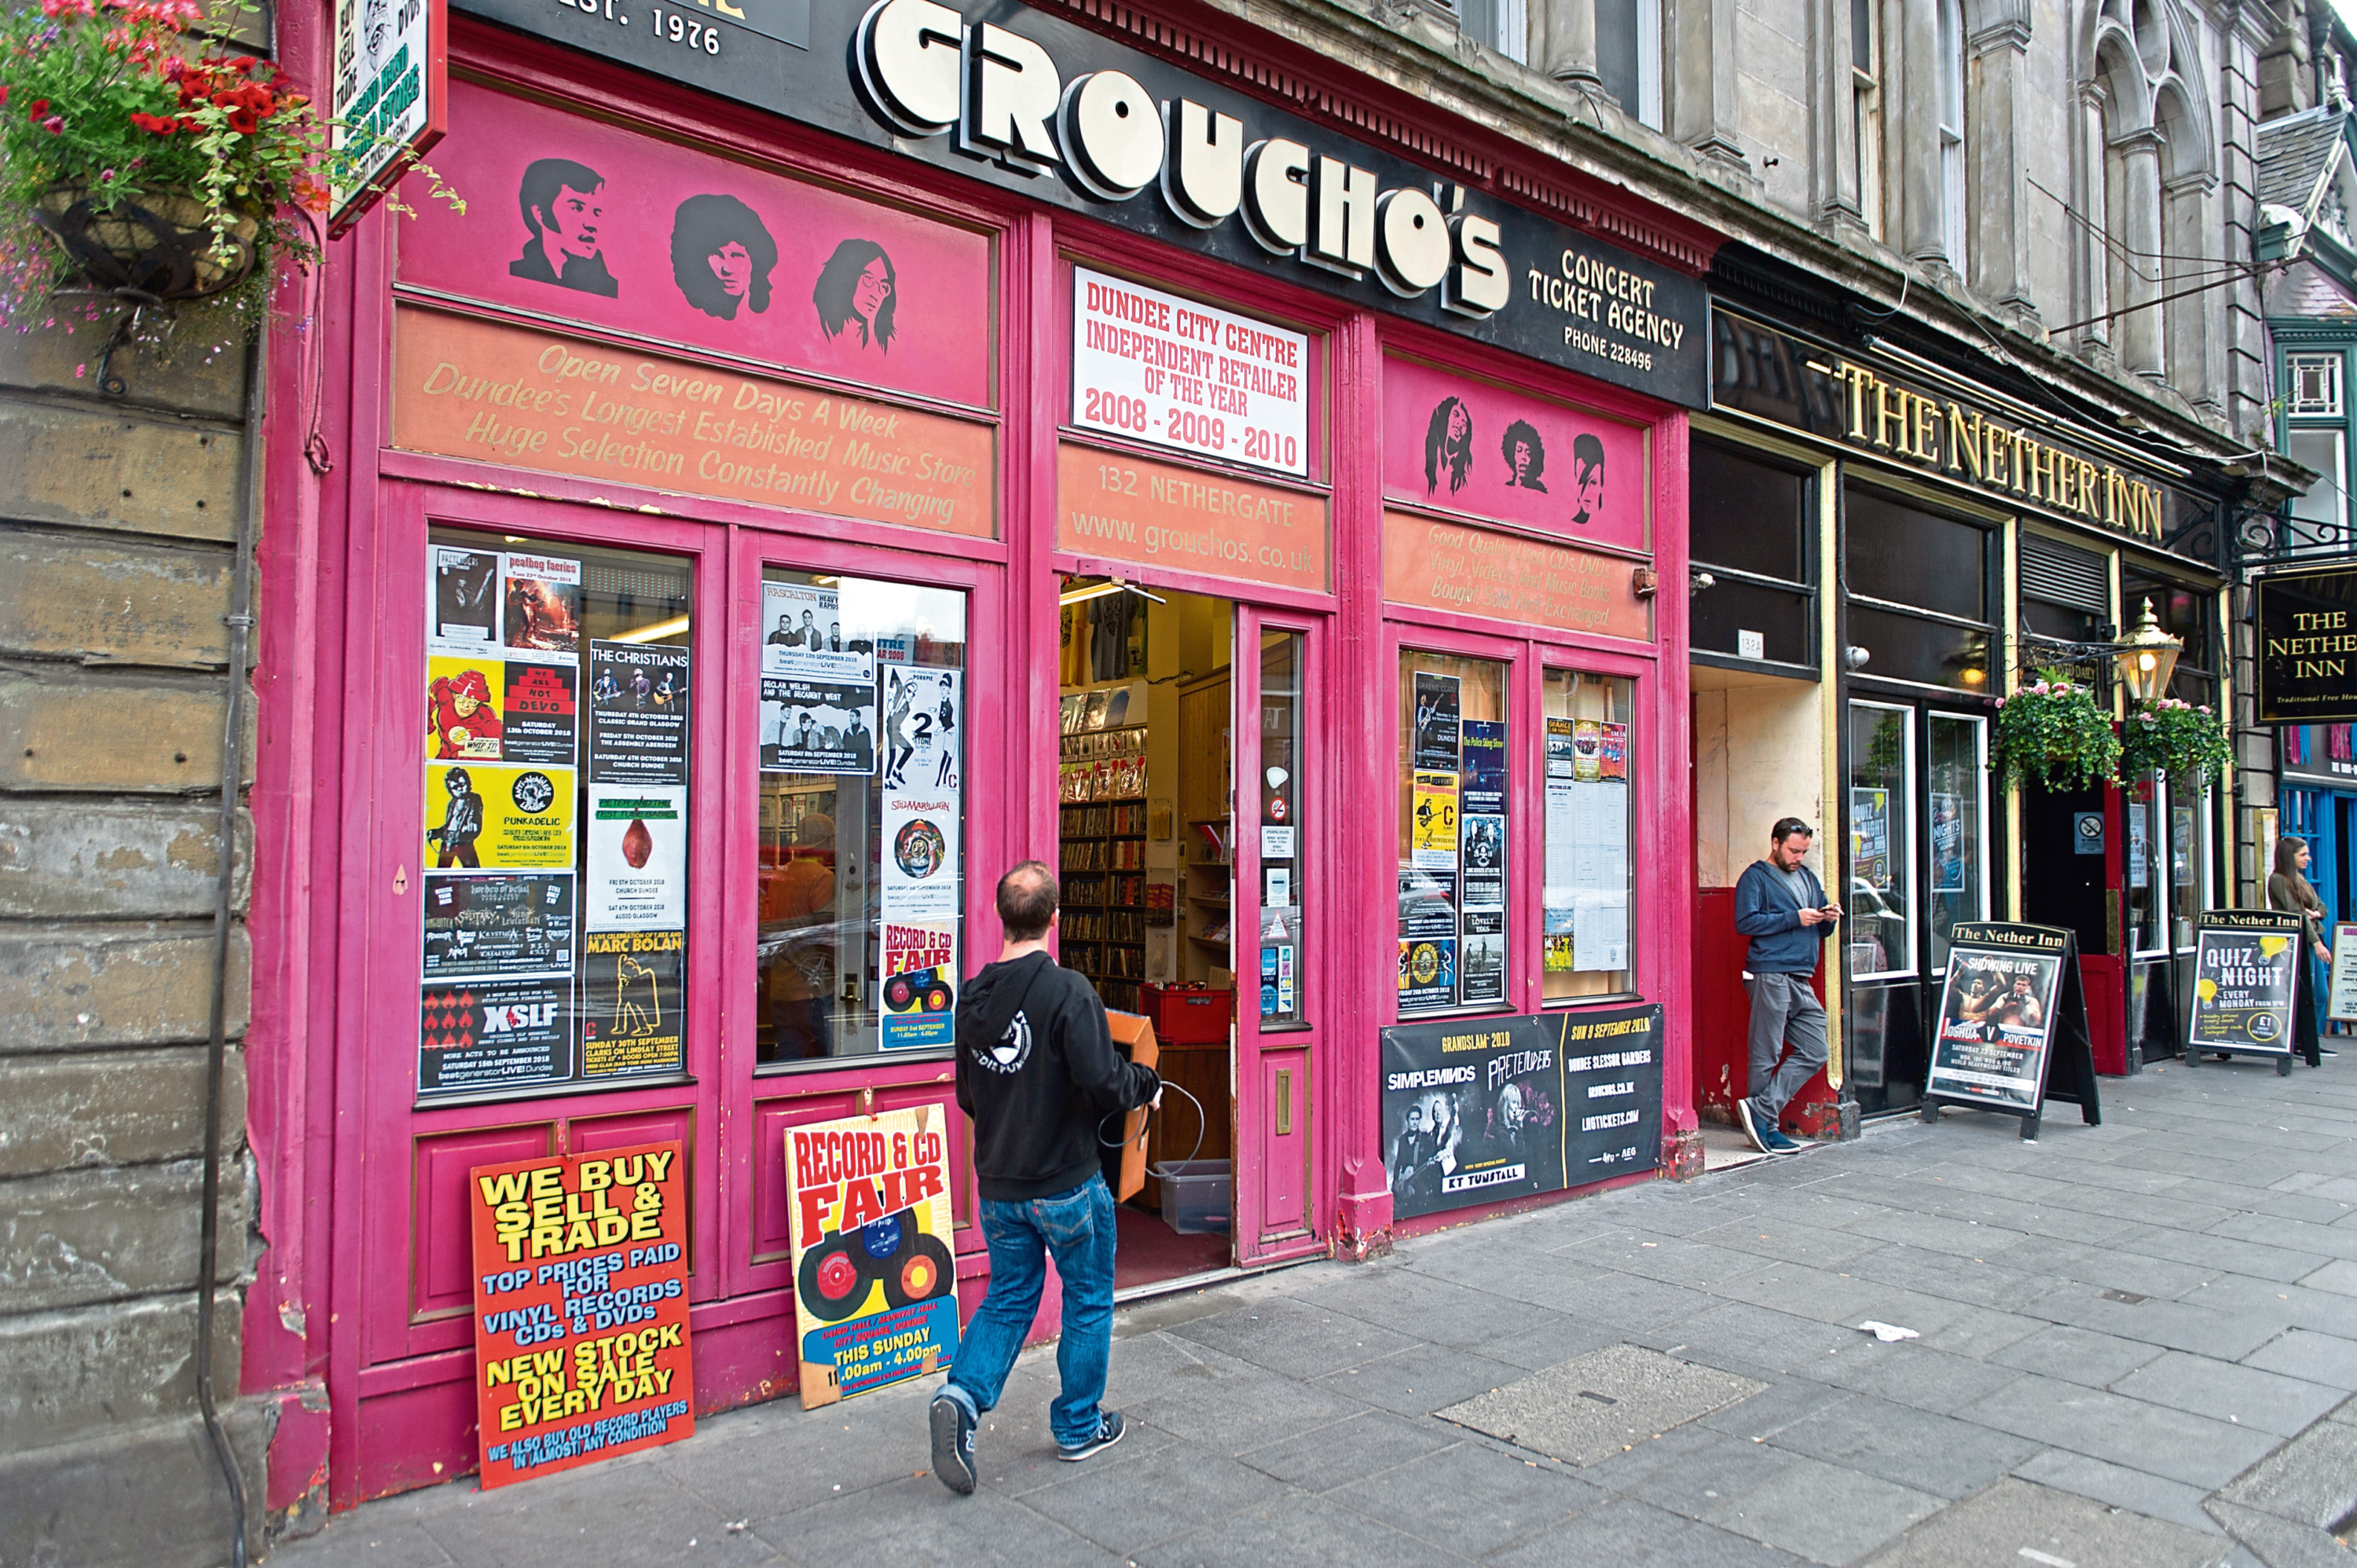 Groucho's record store on the Nethergate.